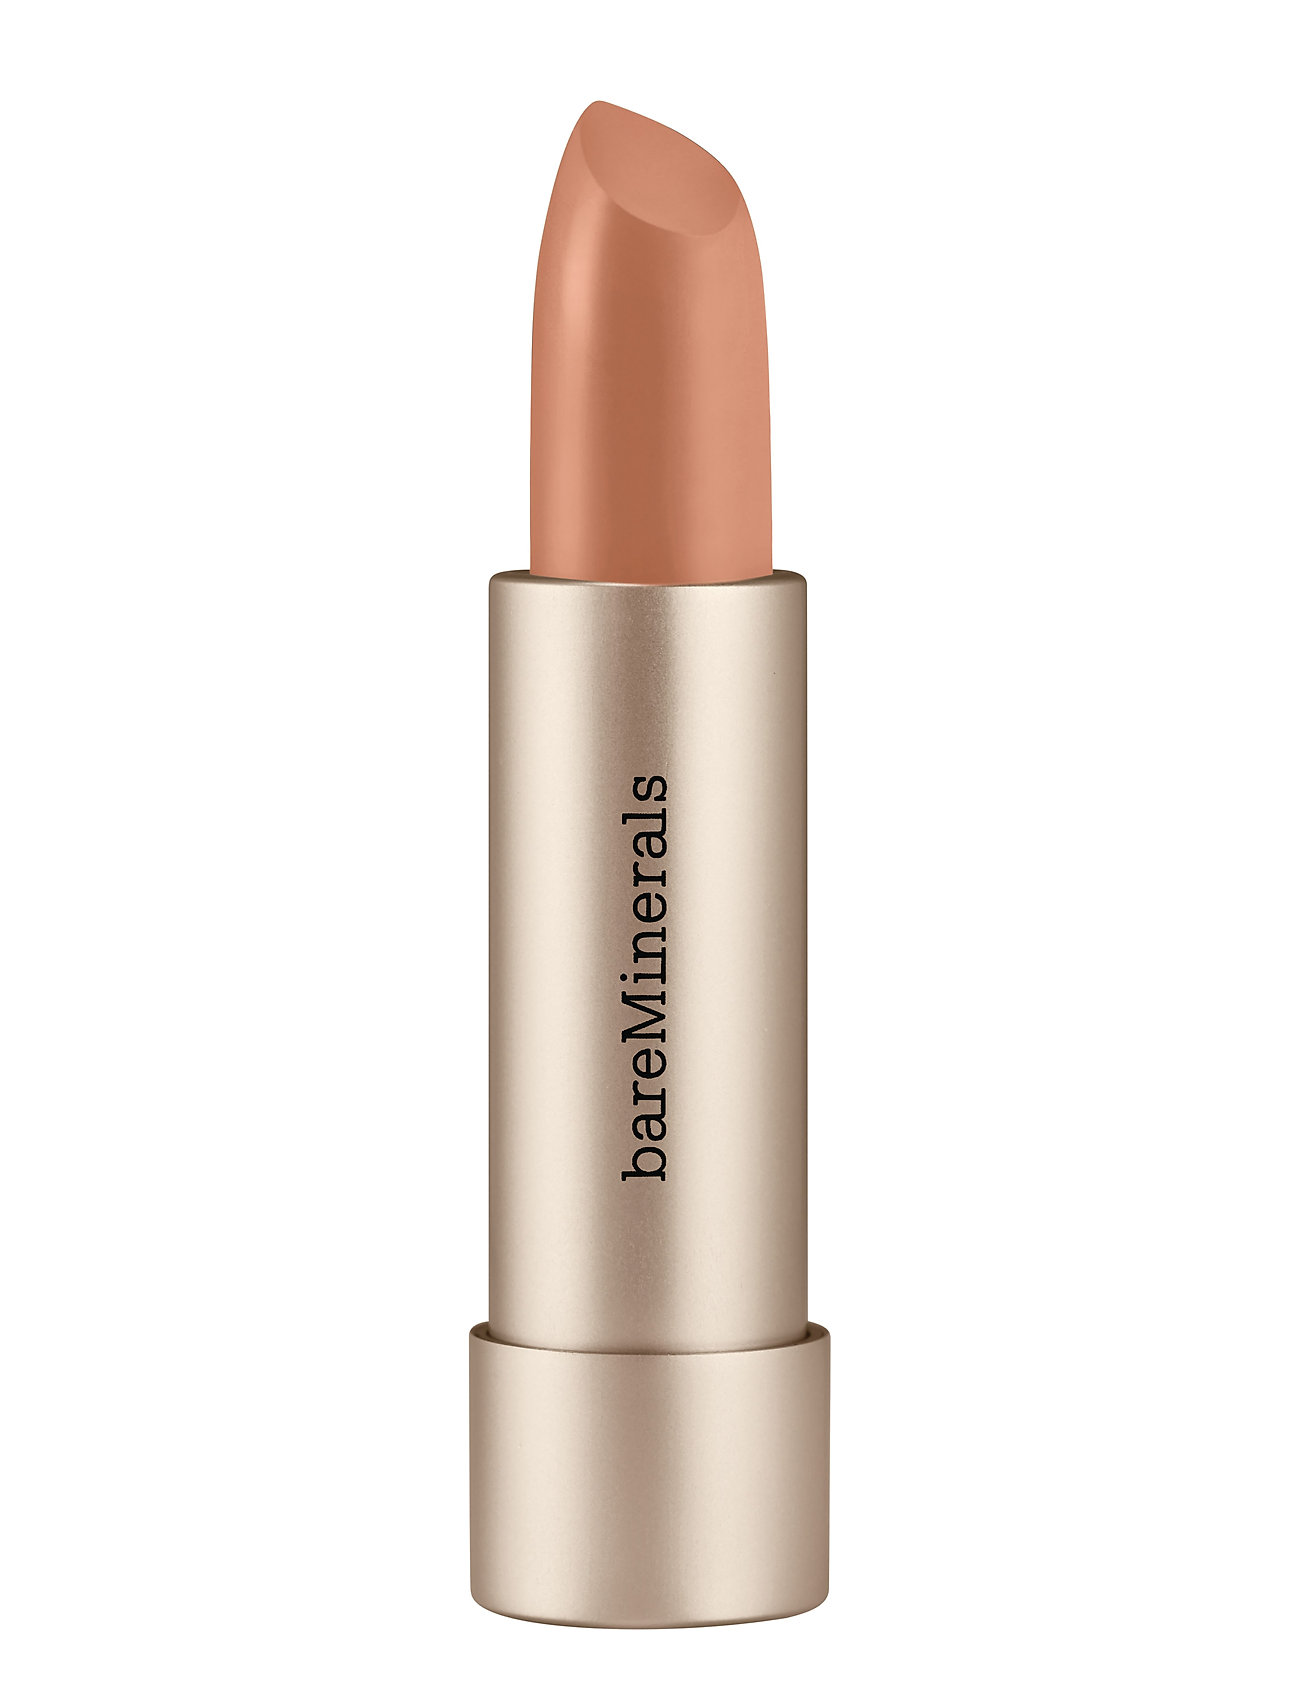 Image of Mineralist Hydra-Smoothing Lipstick Balance Læbestift Makeup BareMinerals (3418623893)